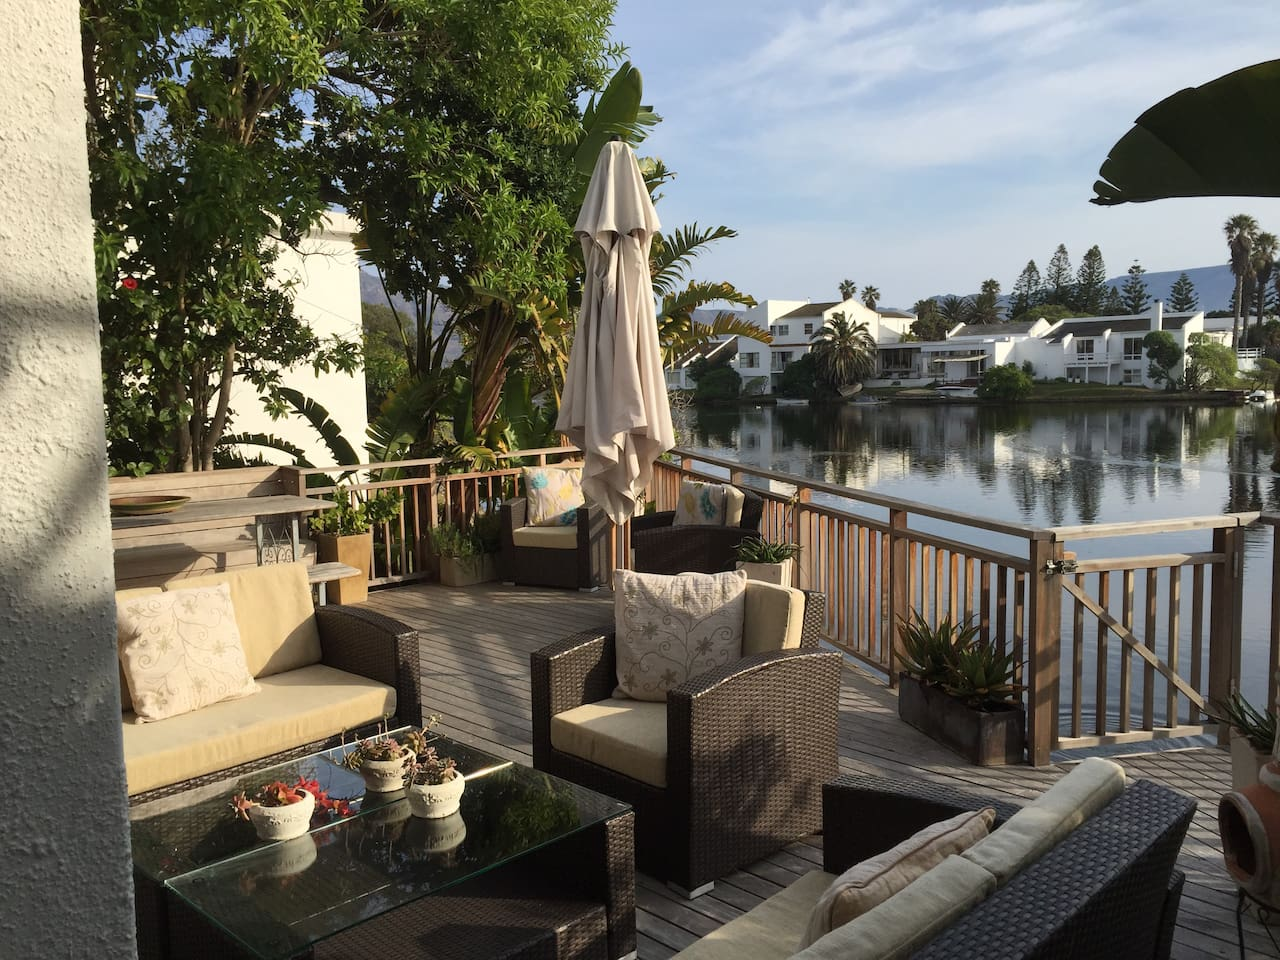 Relax on your own deck right at the water edge of the Marina